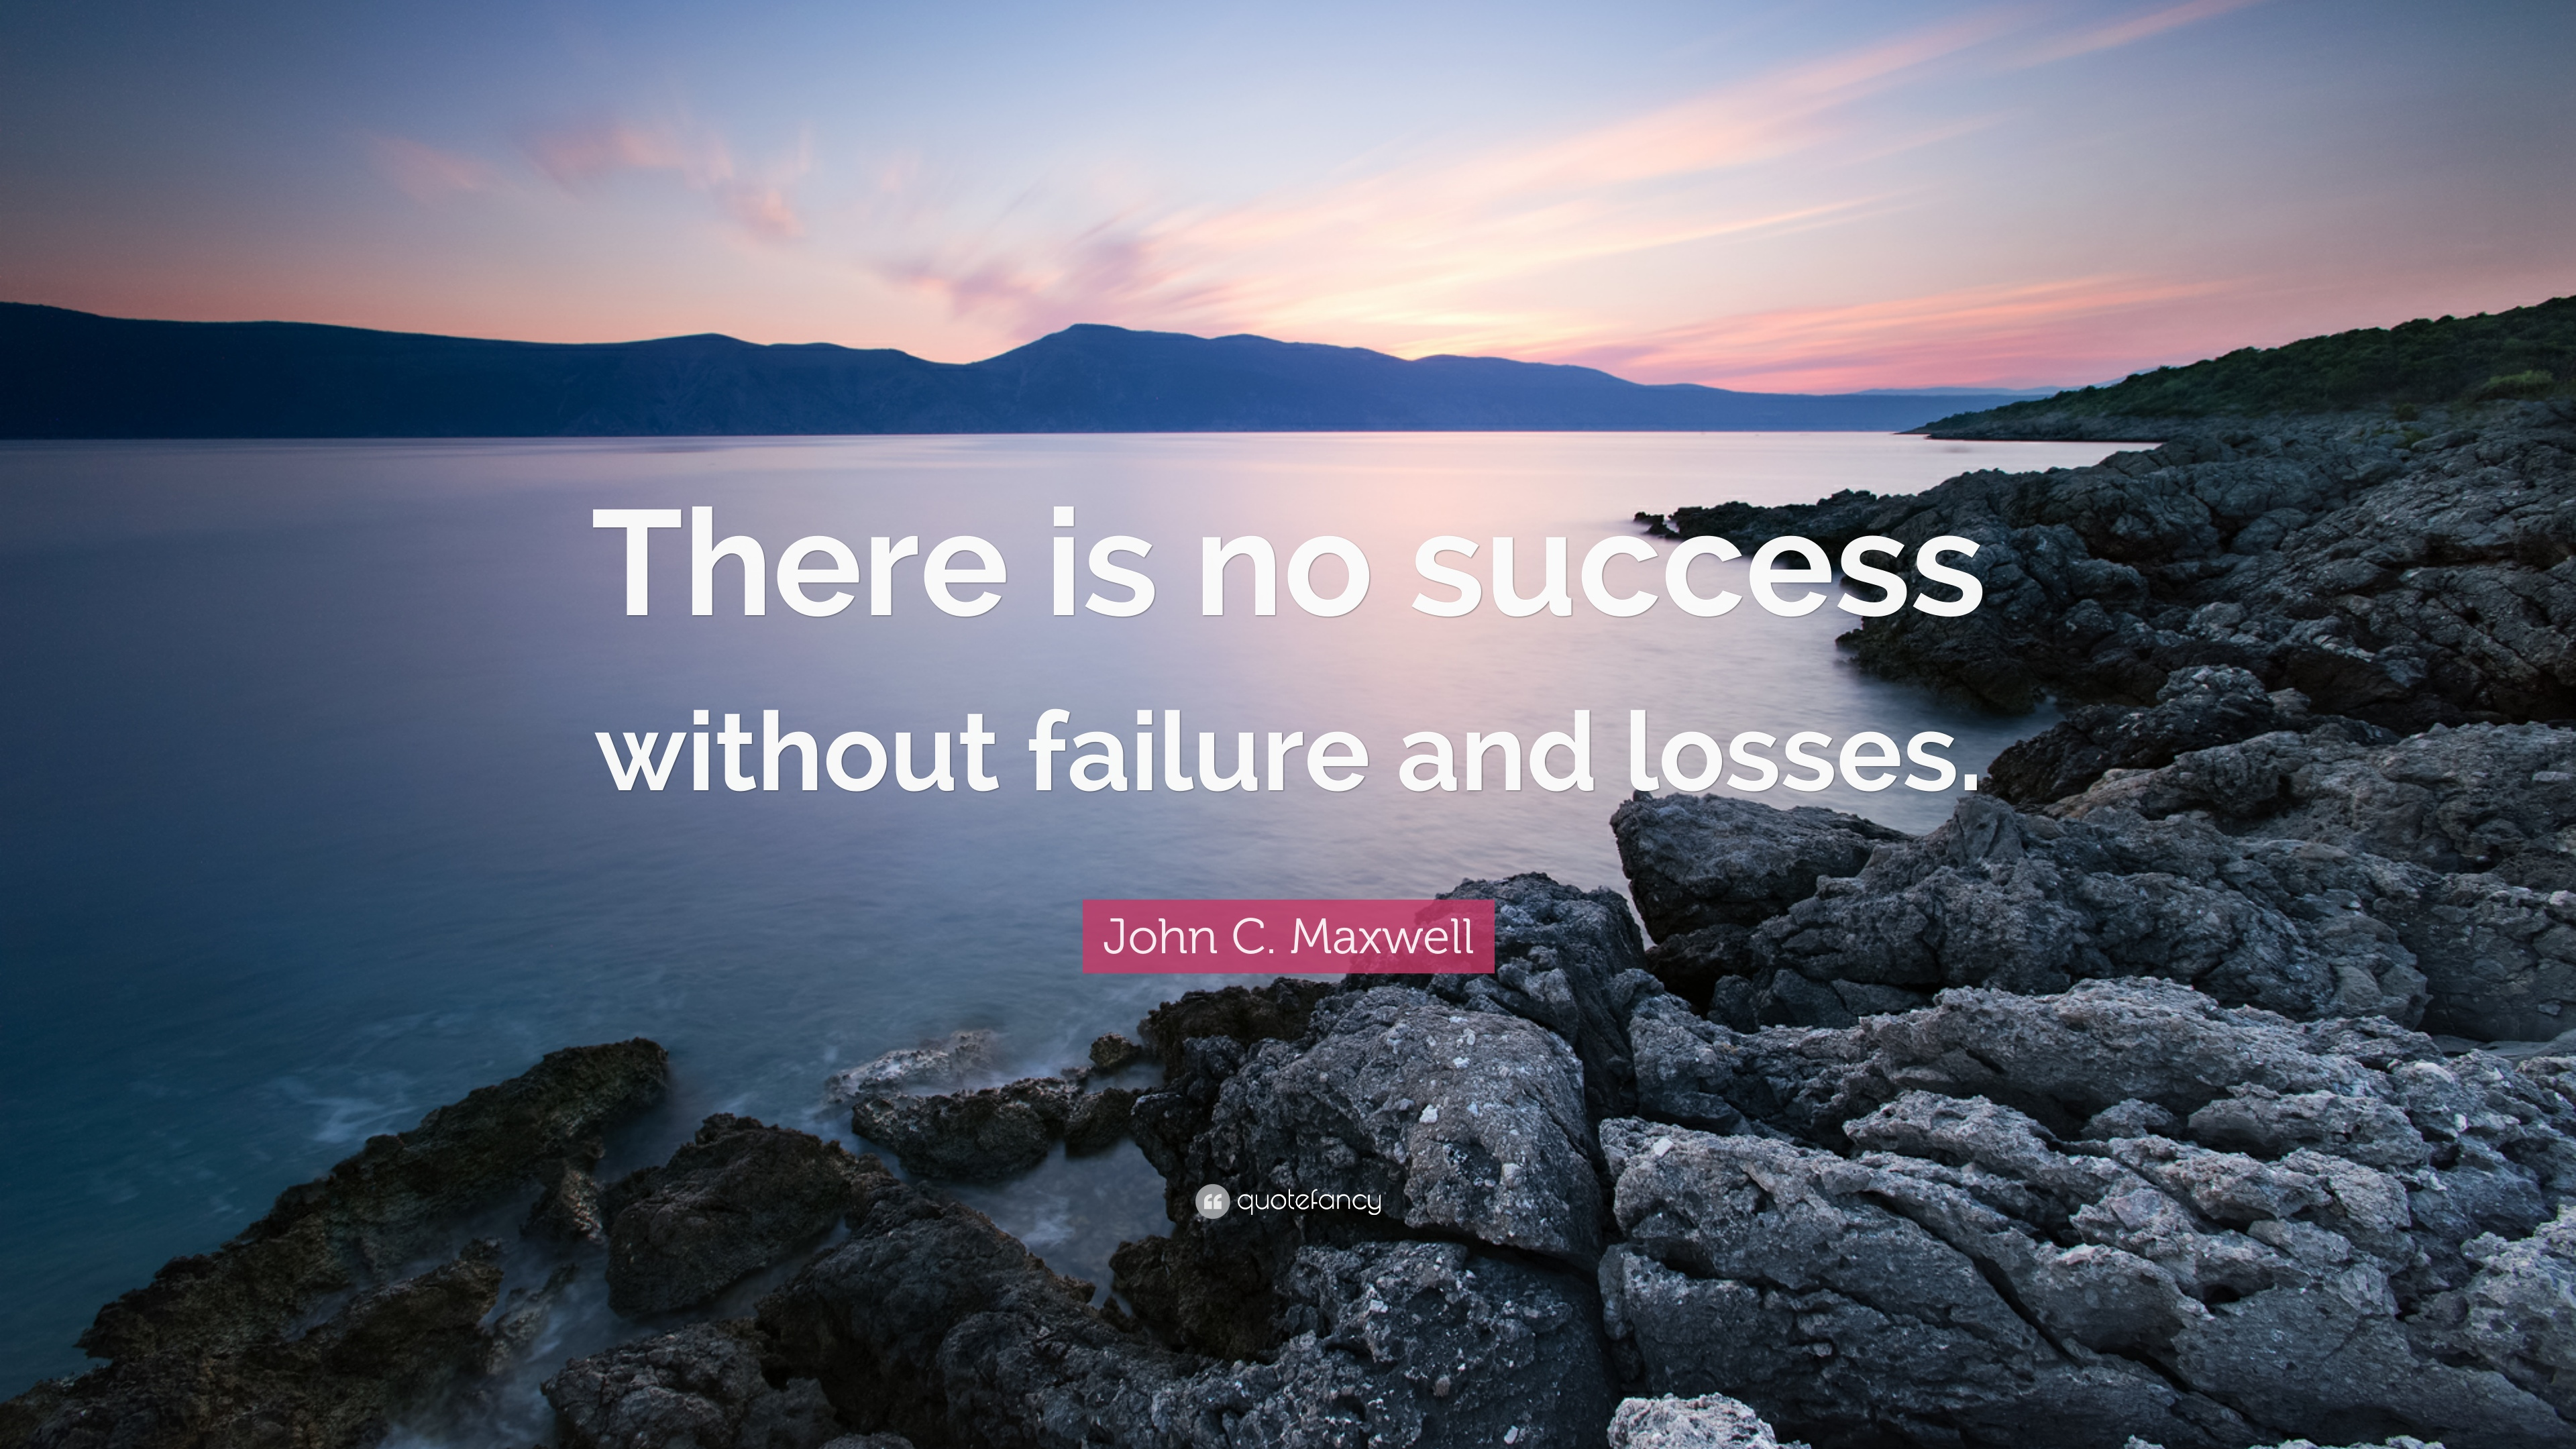 John C Maxwell Quote There Is No Success Without Failure And